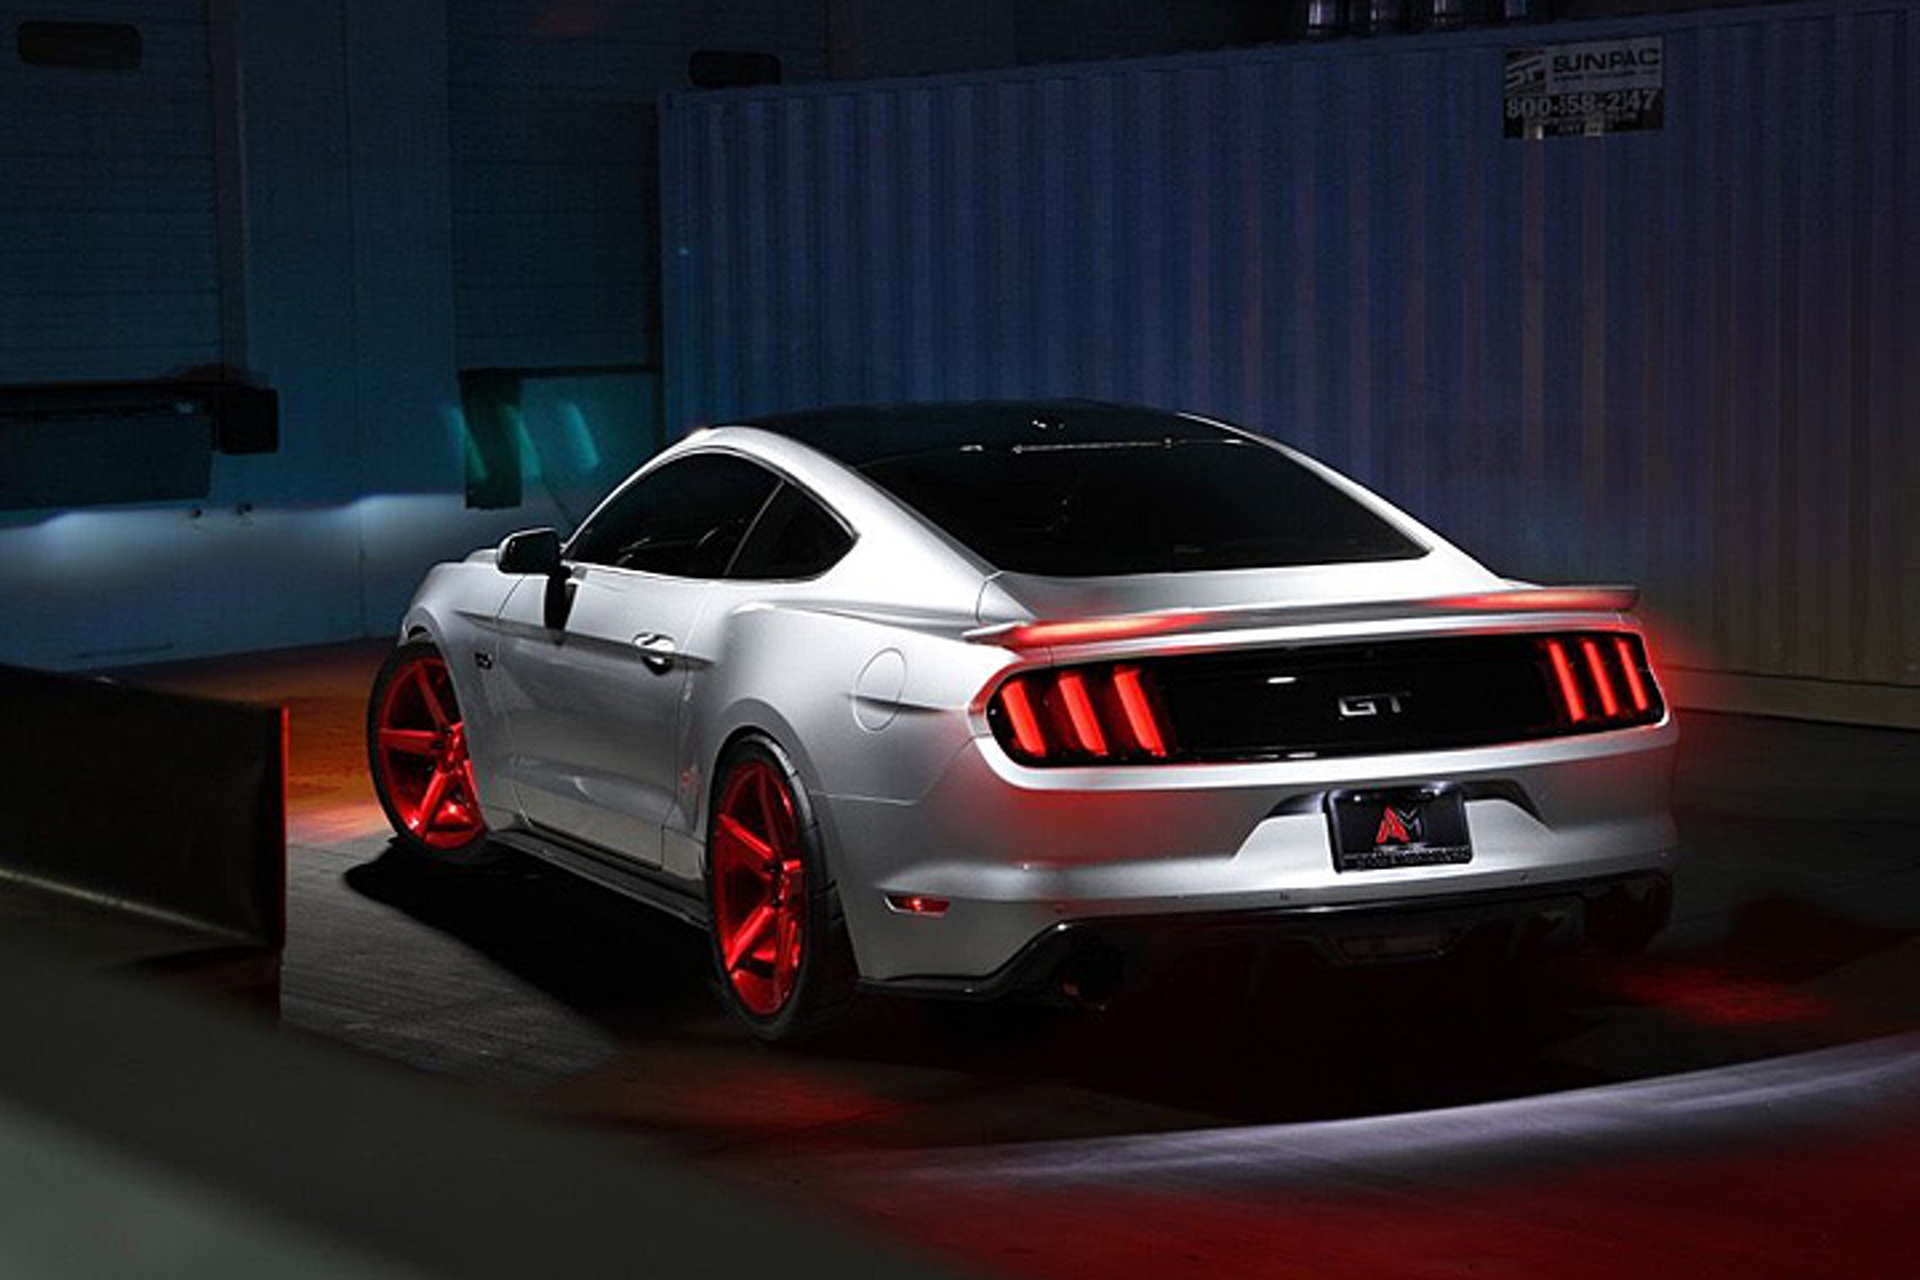 This 700hp sema ford mustang needs a new home motor1 com photos